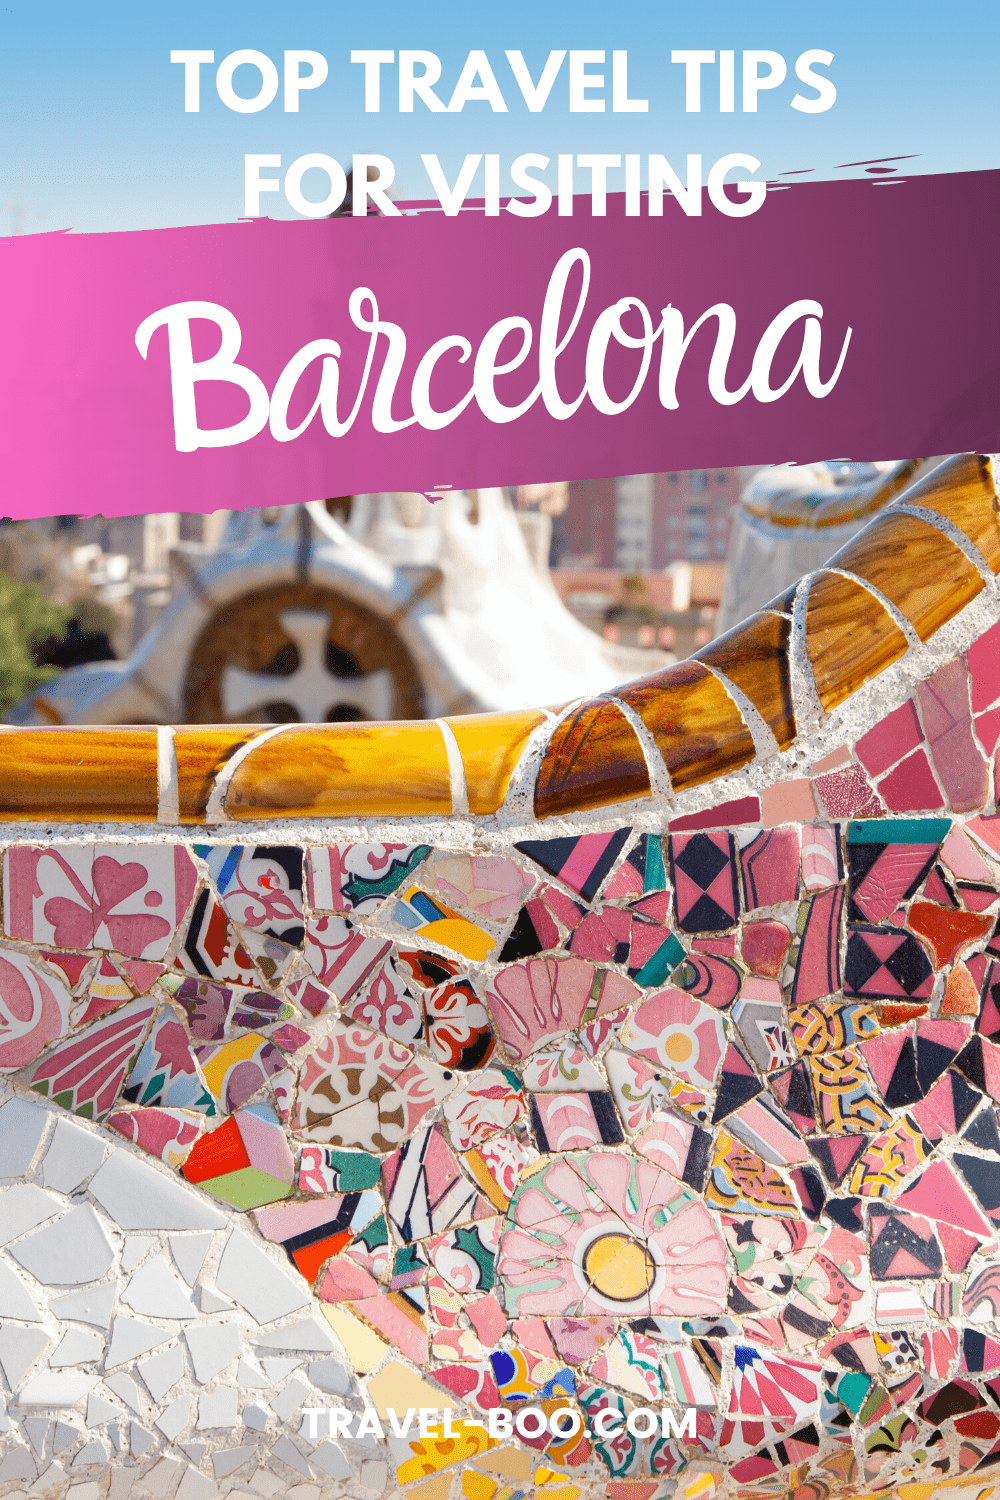 Top Travel Tips for visiting Barcelona for the first time! Barcelona Spain Travel | Barcelona Travel Tips | Barcelona Travel | Barcelona Travel Guide | Barcelona Travel things to do | Spain Travel | Spain Travel Guides | Spain Travel Tips! #barcelonatravel #barcelona #spain #spaintravel